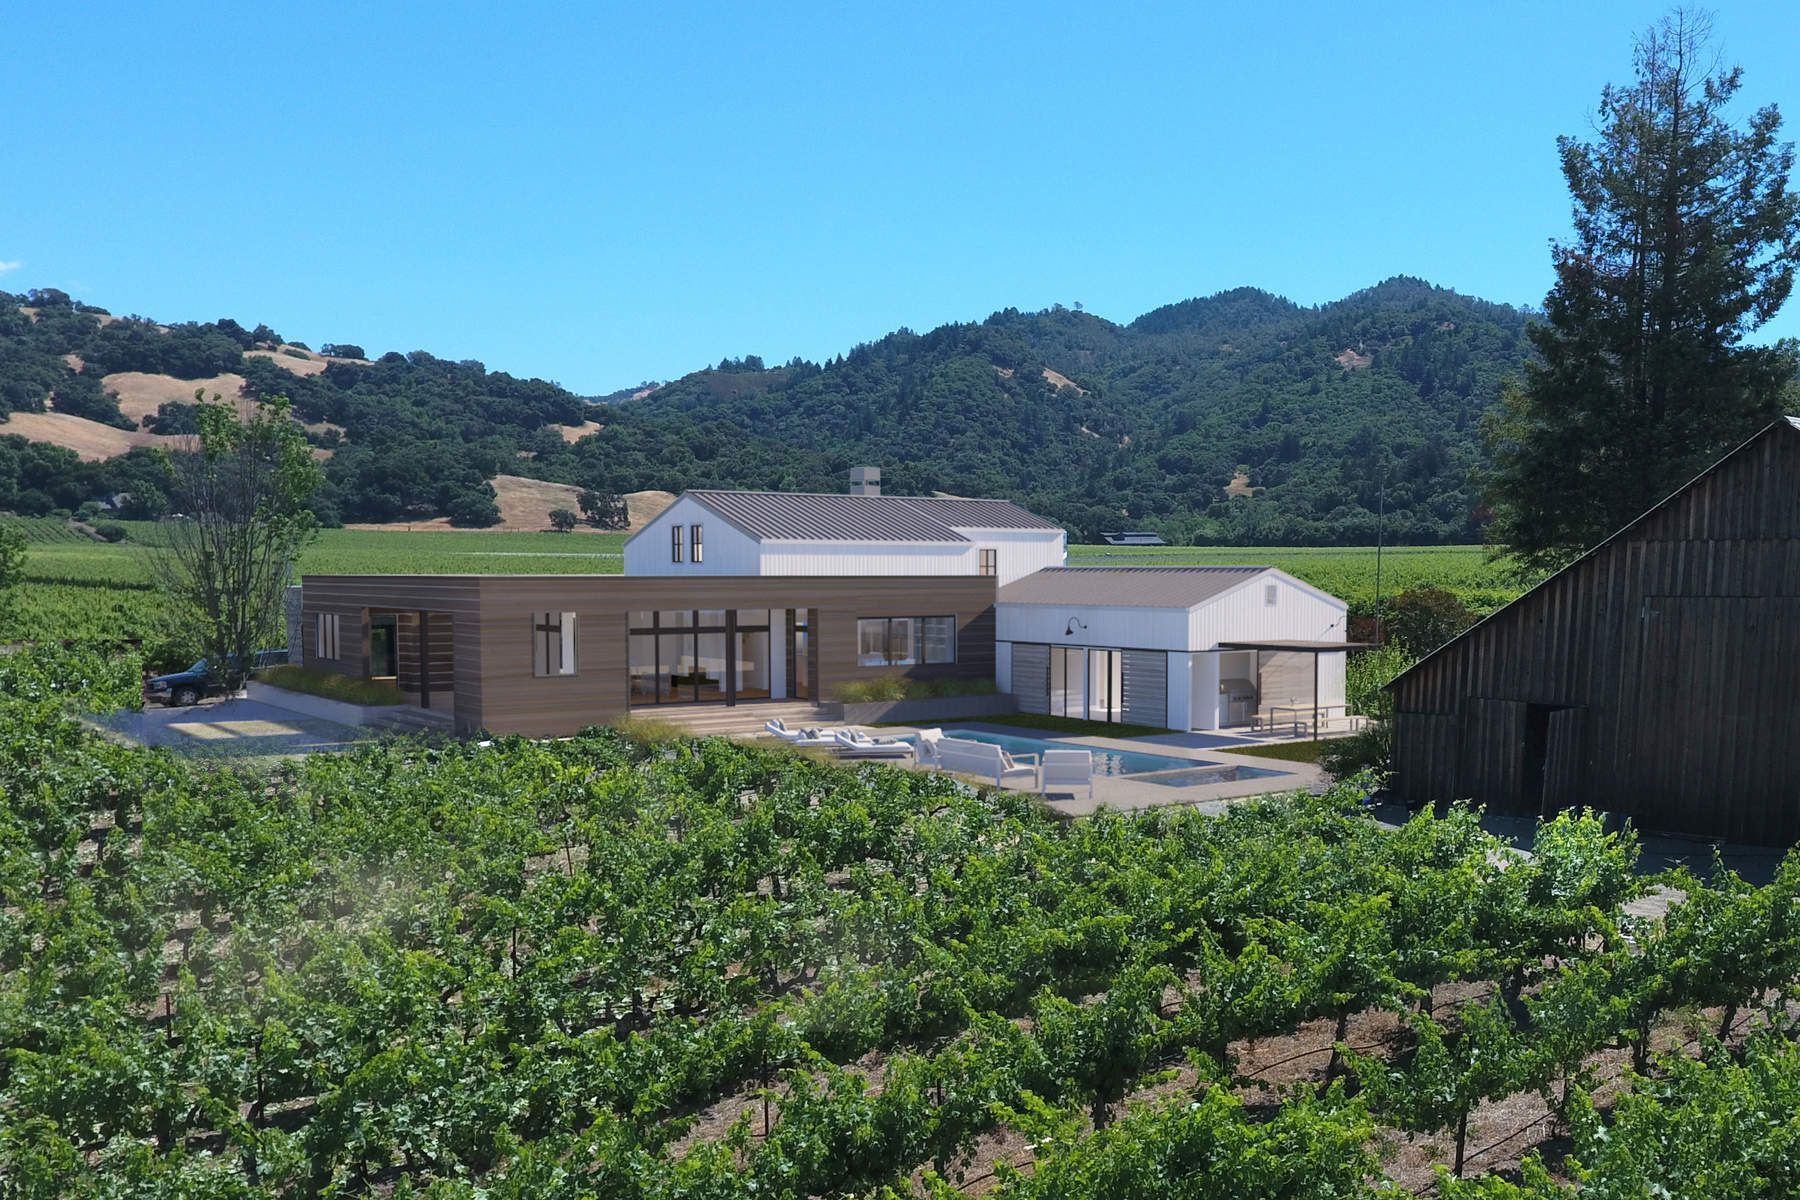 Single Family Home for Sale at 6400 Red Winery Road 6400 Red Winery Rd Geyserville, California 95441 United States